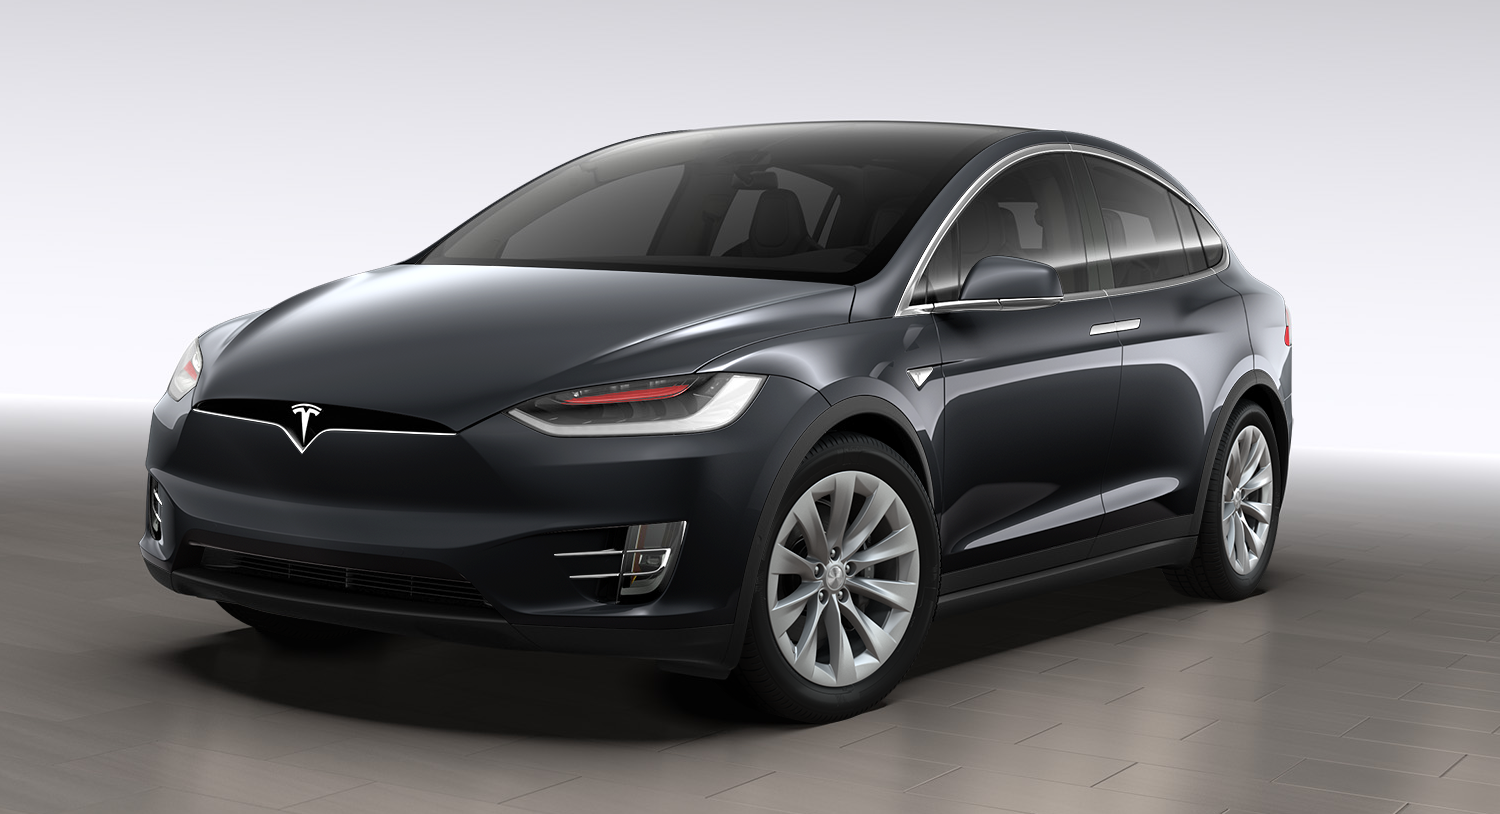 Teslau0027s Model X crossover-egg has had a rough history with automatic doorsu2014namely those fancy-but-flawed Falcon Wing doors for passengers. & This Tesla Model X Is A Parking Lot Bully